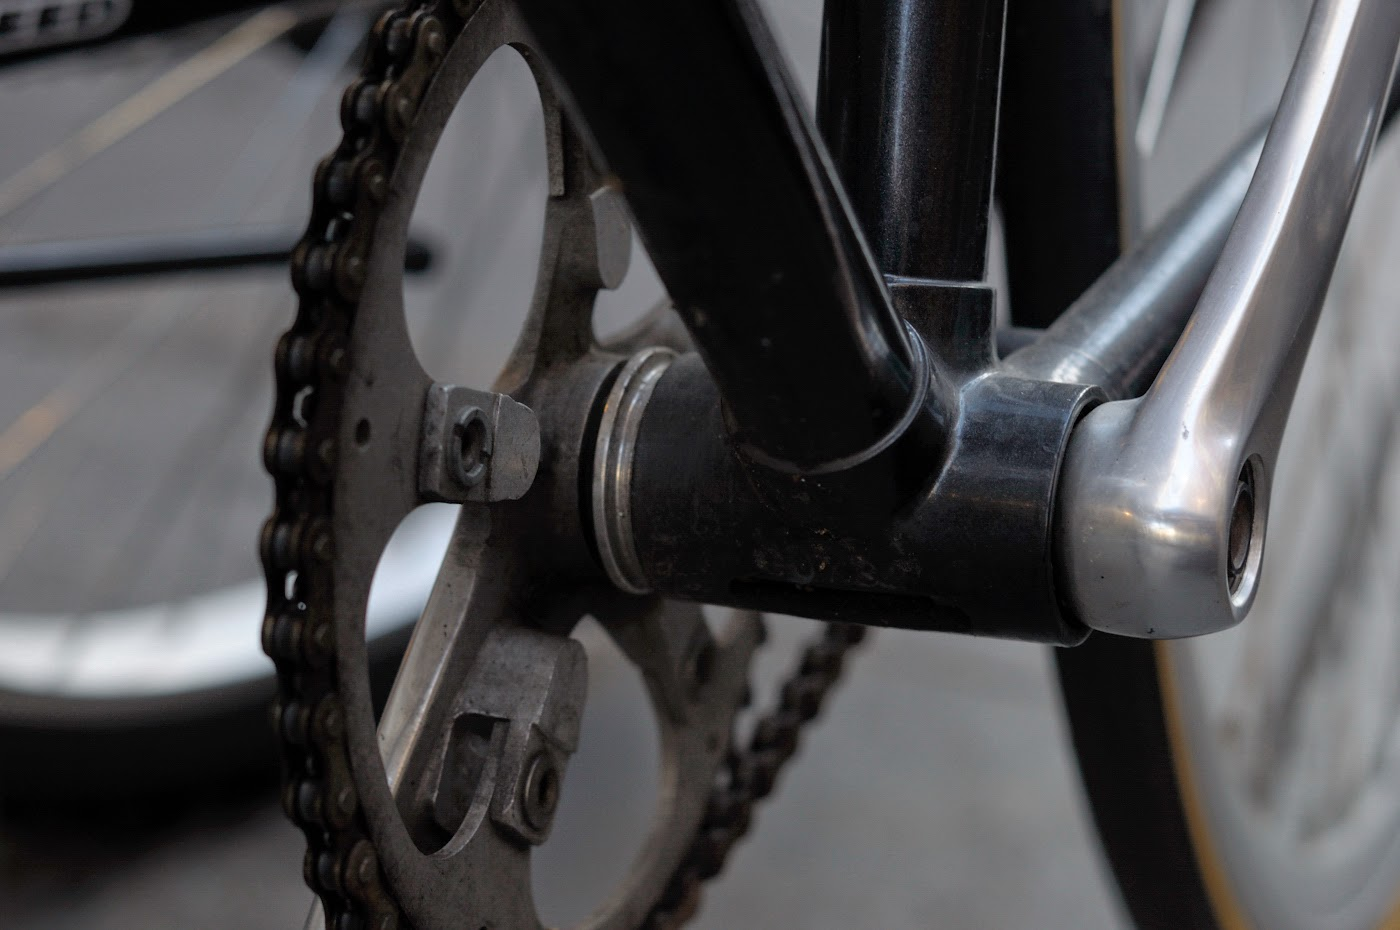 Bespoke, customisation, conversion, frame, Melbourne, Australia, tim macauley, the biketorialist, single speed, custom, flinders lane, bike, bicycle,  chain, bottom bracket, crank